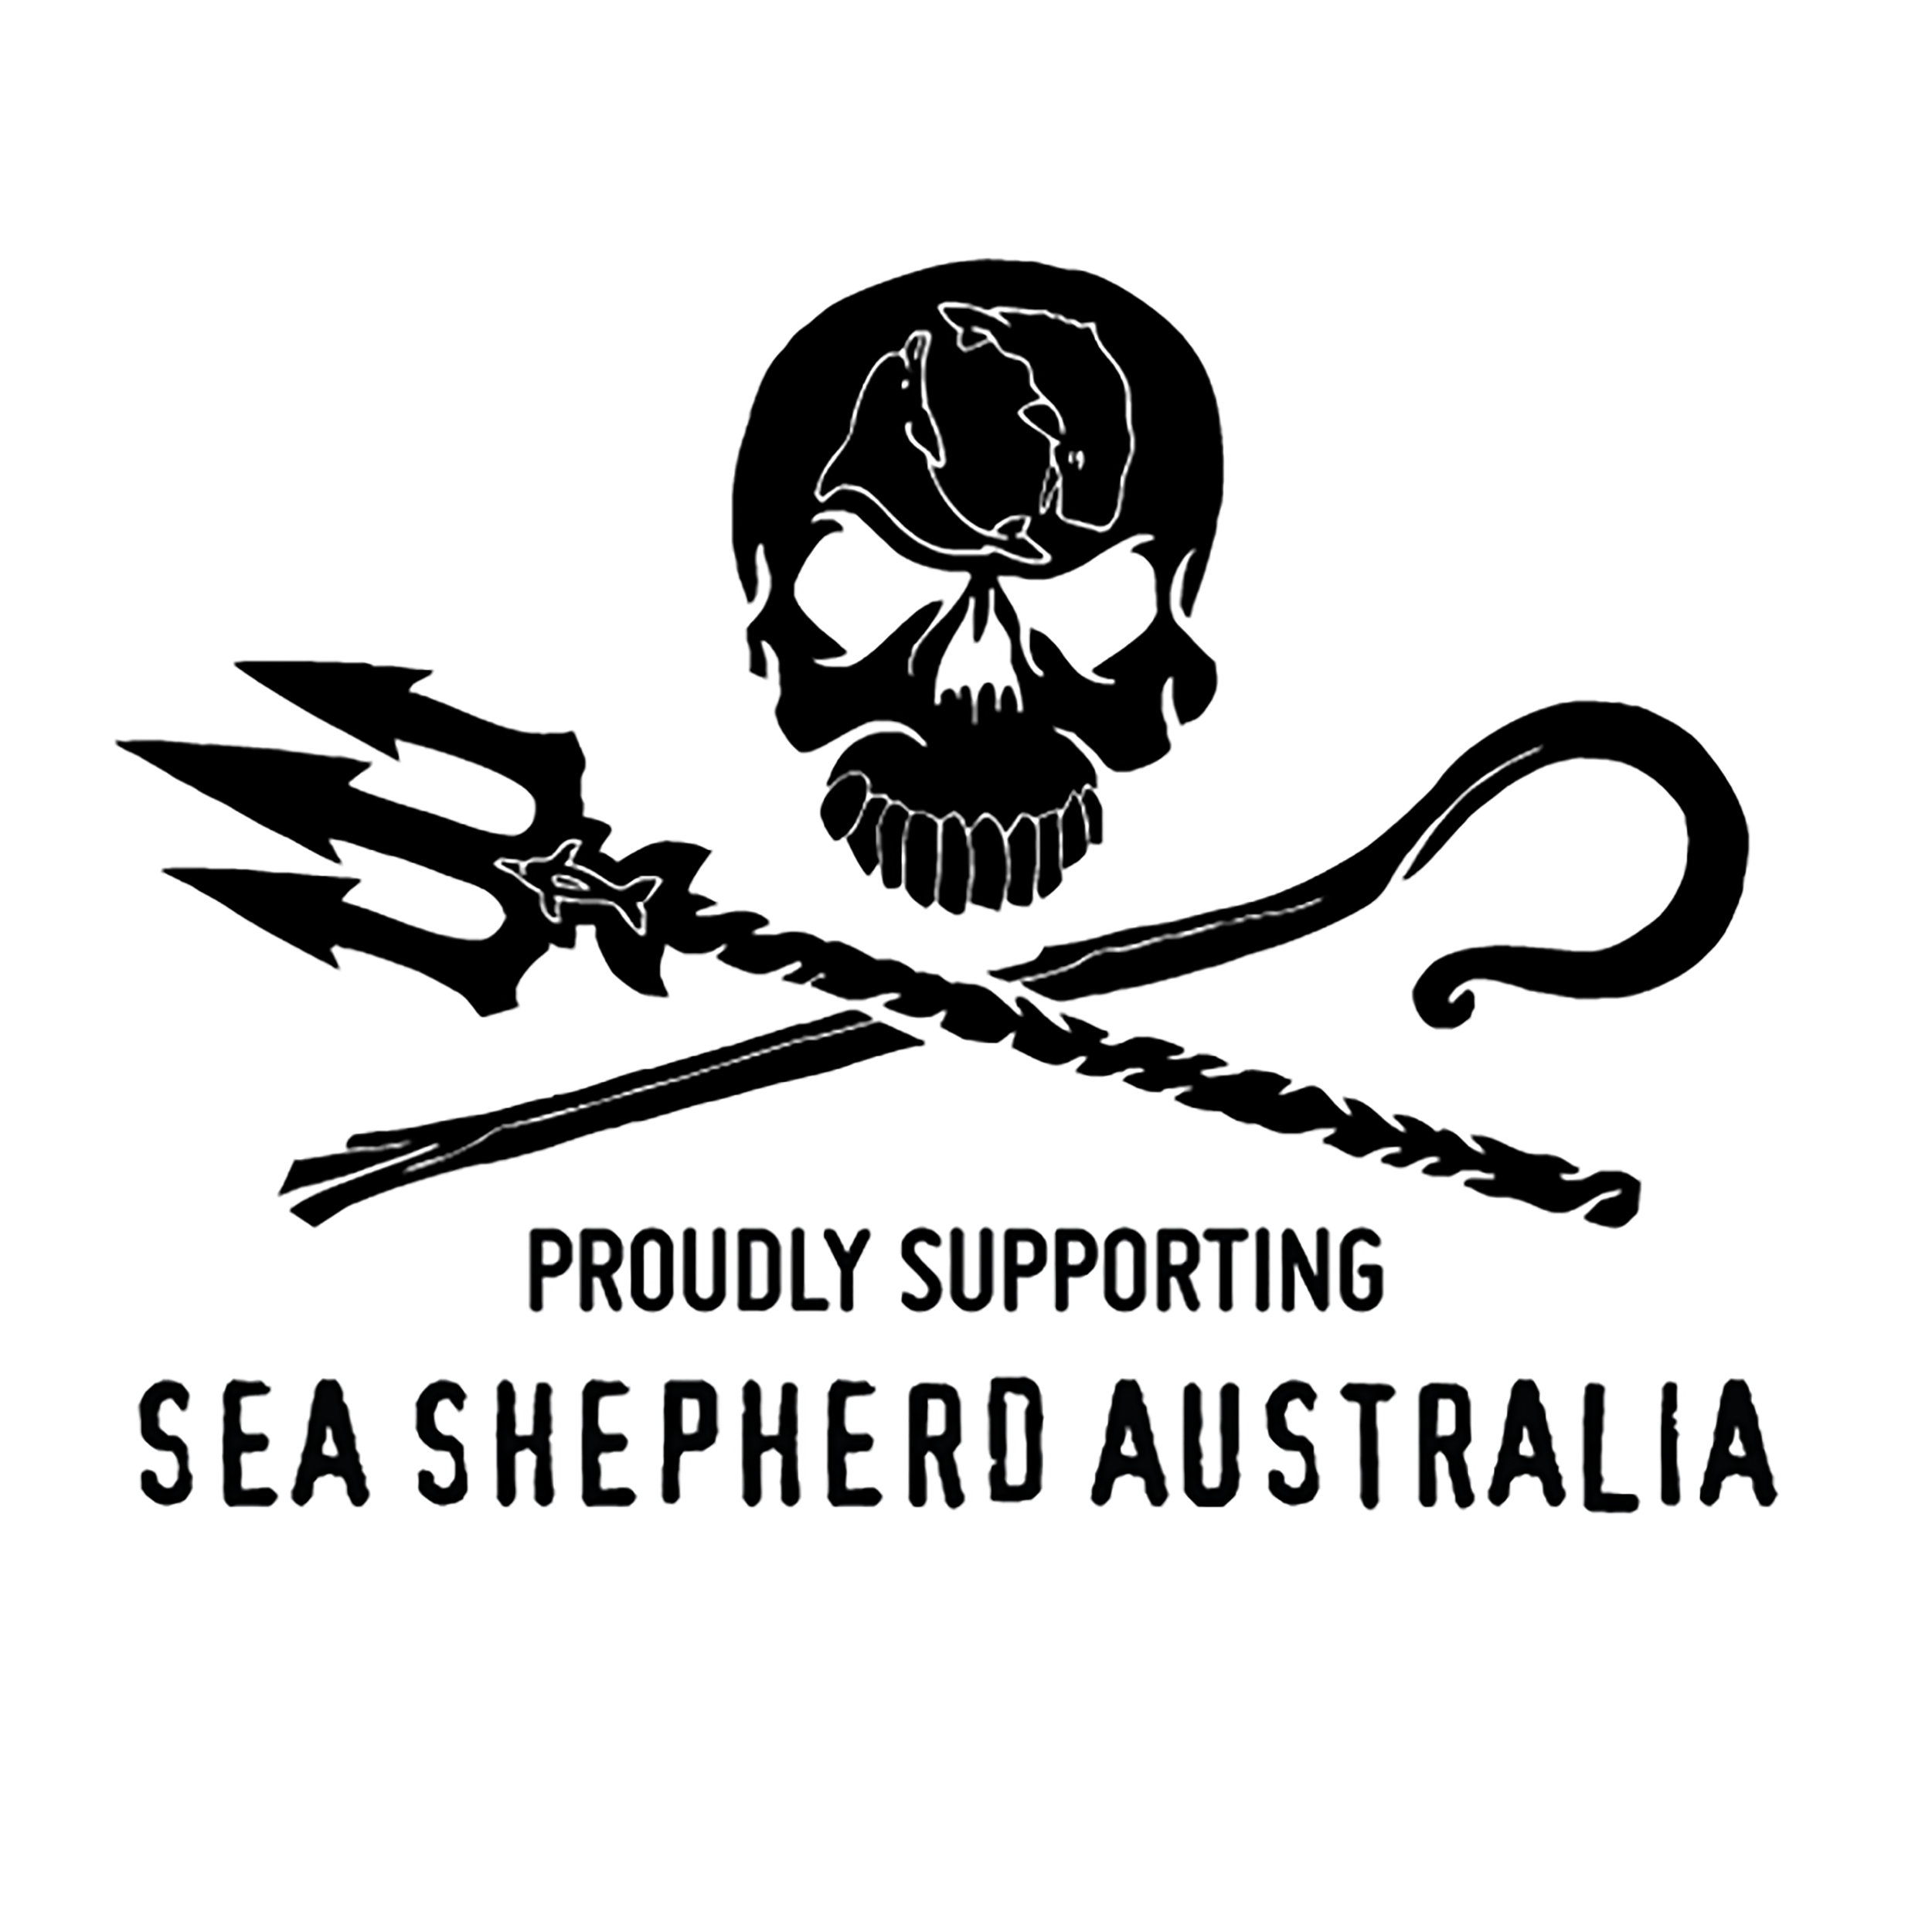 6 Sea Shepherd_LOGO (1).jpg